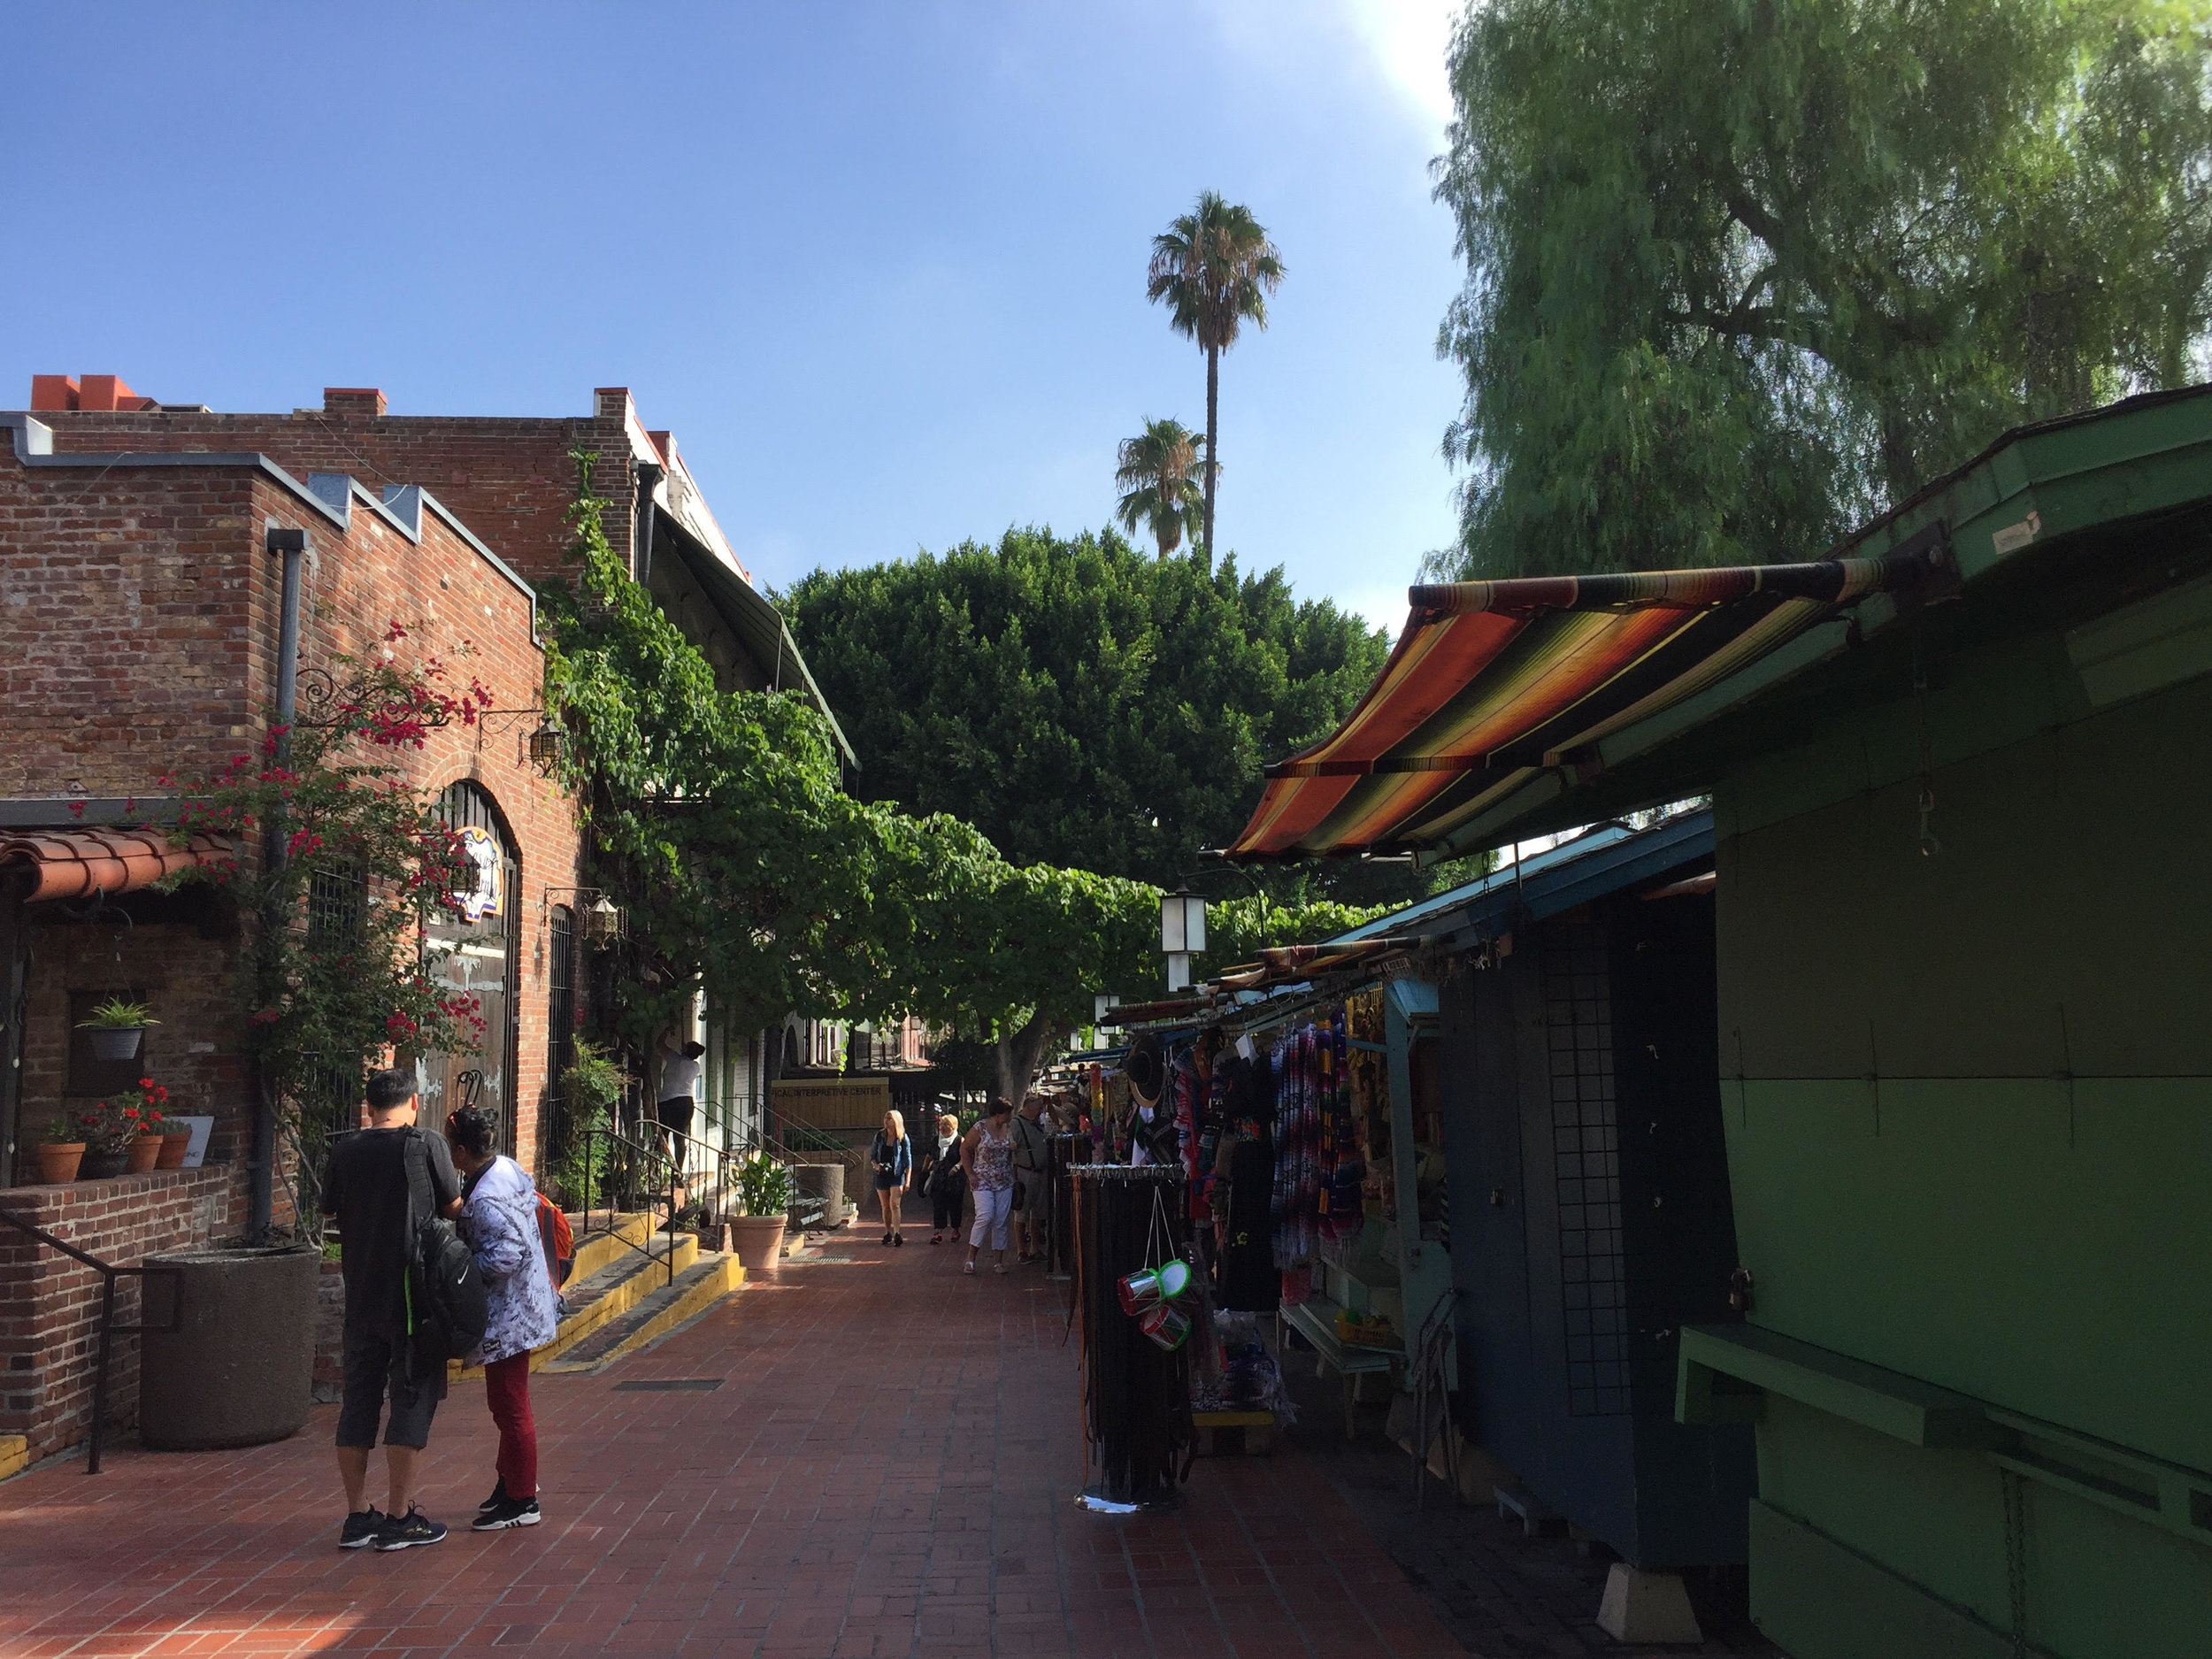 Vendors and small shops line Olvera Street.